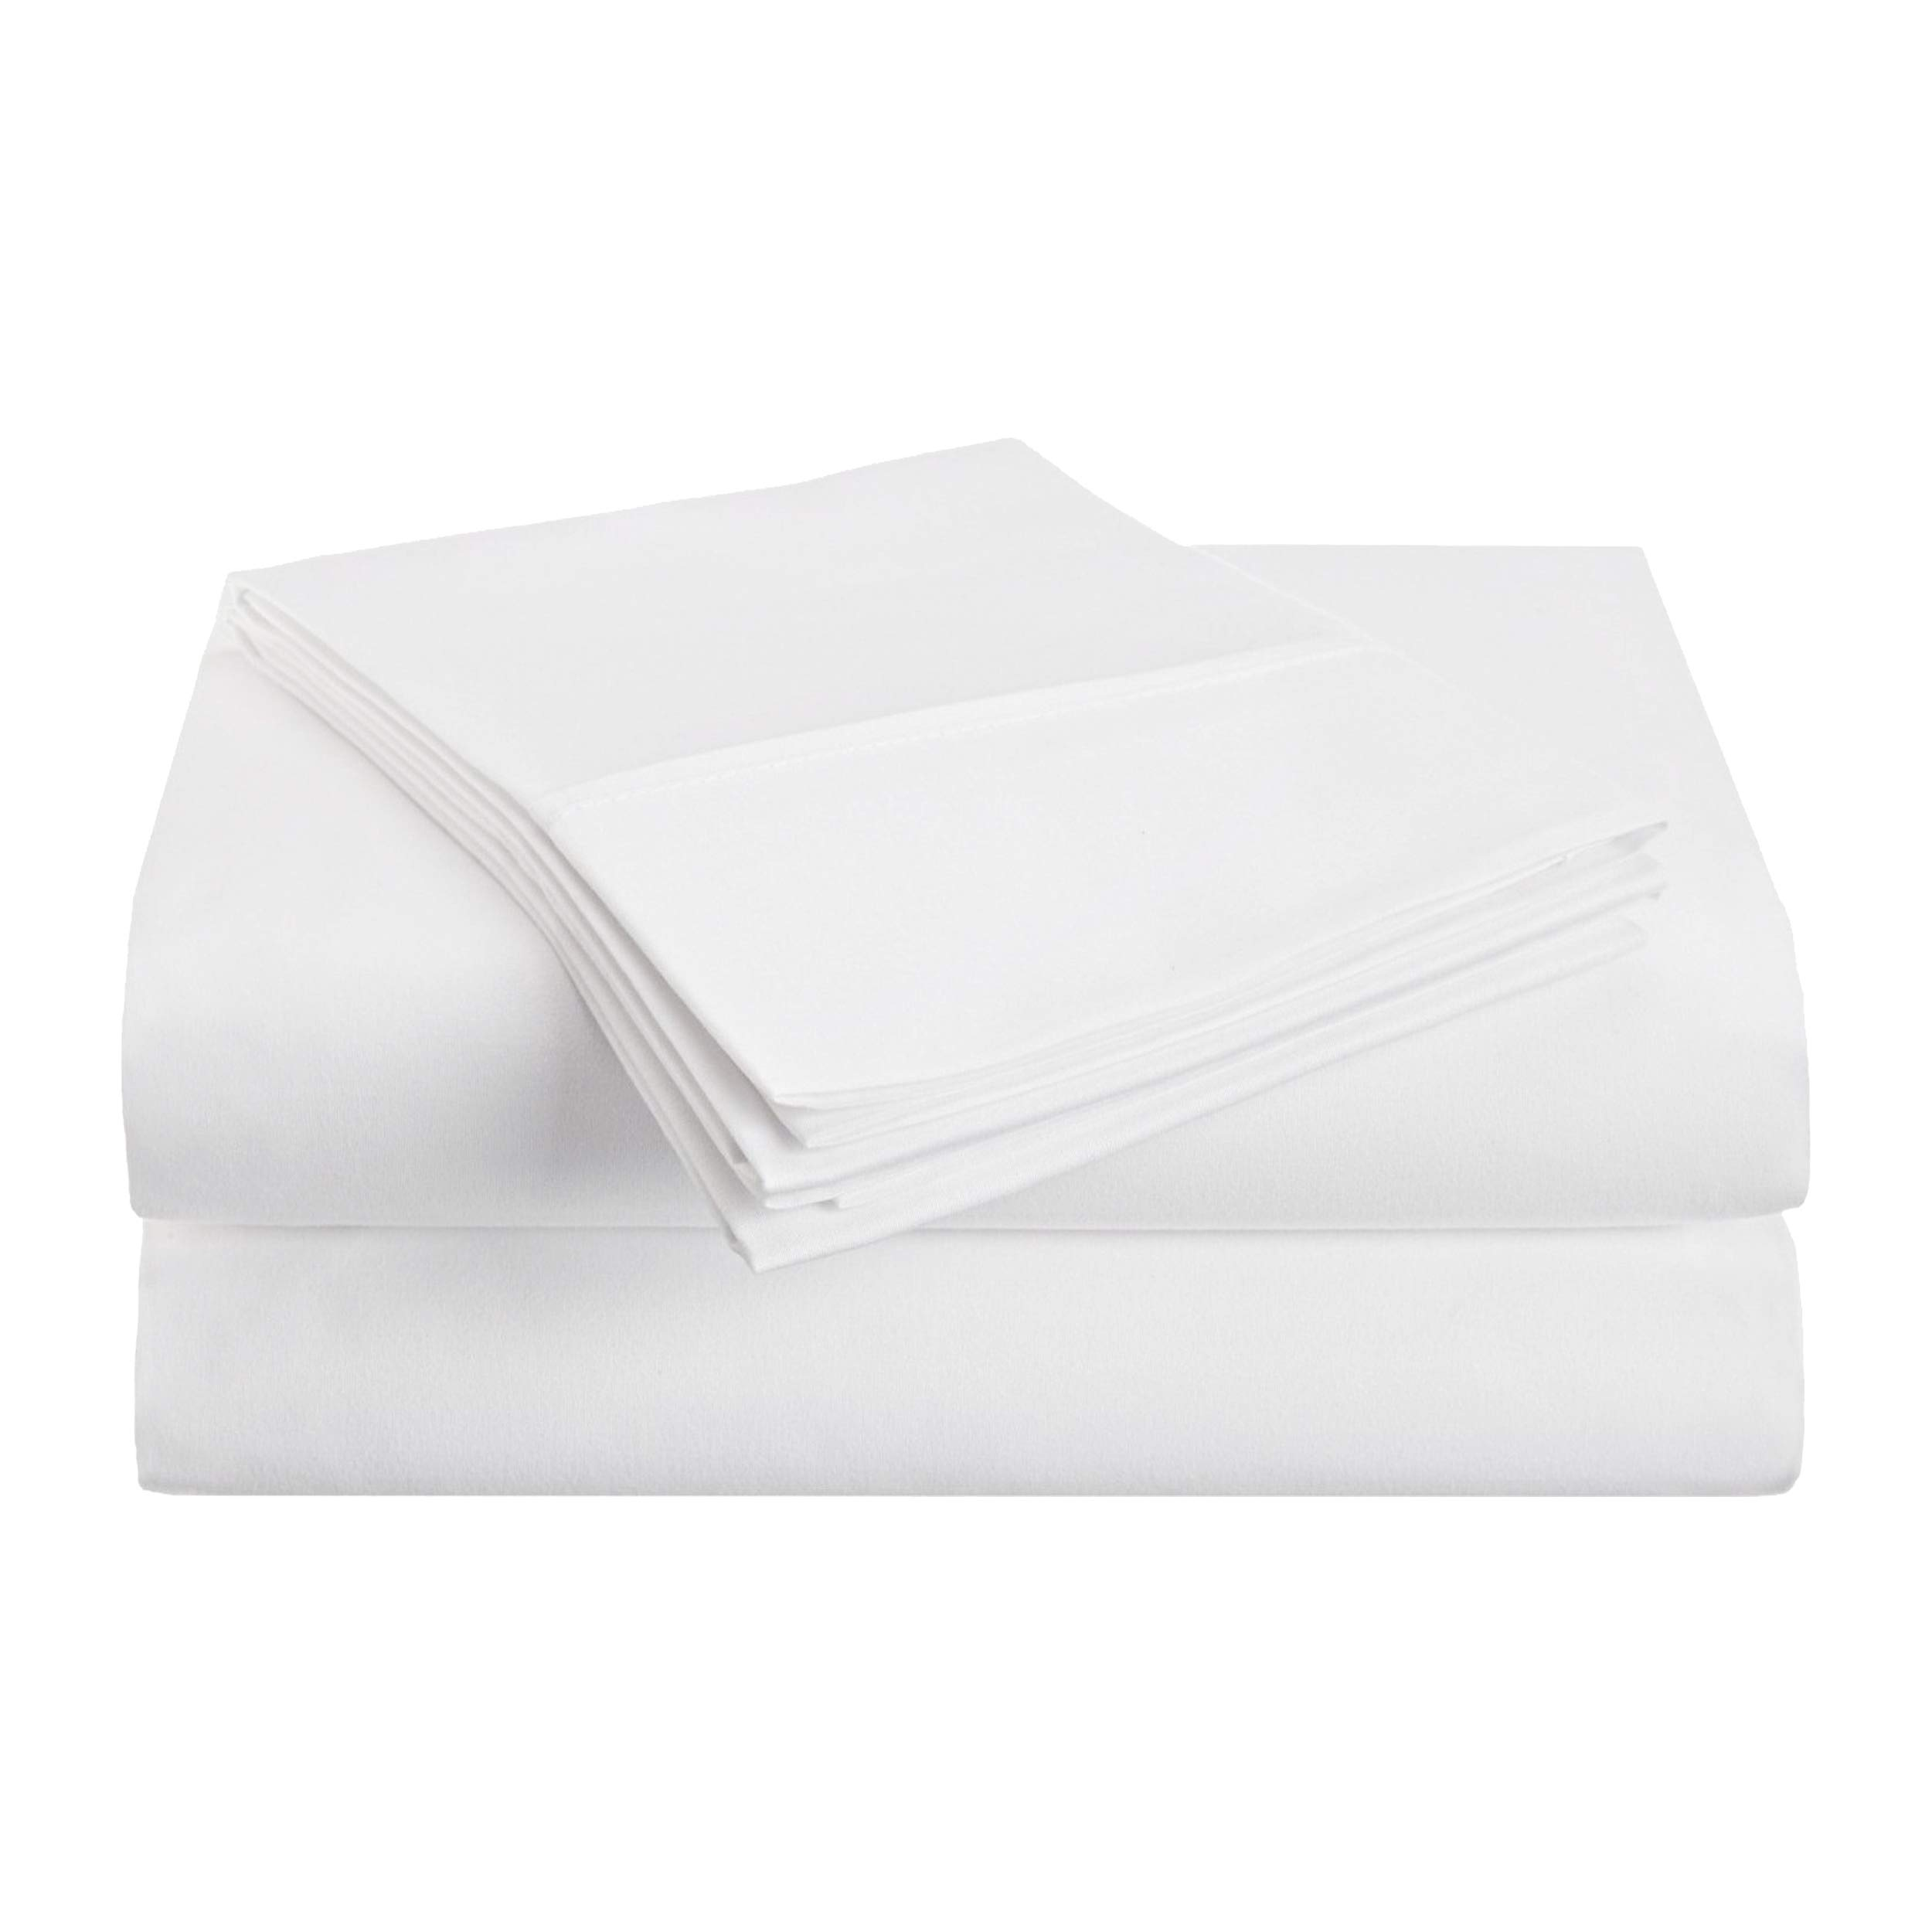 Superior 1500 Series Premium Quality 100% Brushed Soft Microfiber 3-Piece Luxury Deep Pocket Cooling Bed Sheet Set, Hypoallergenic, Wrinkle and Stain Resistant - Twin XL, White